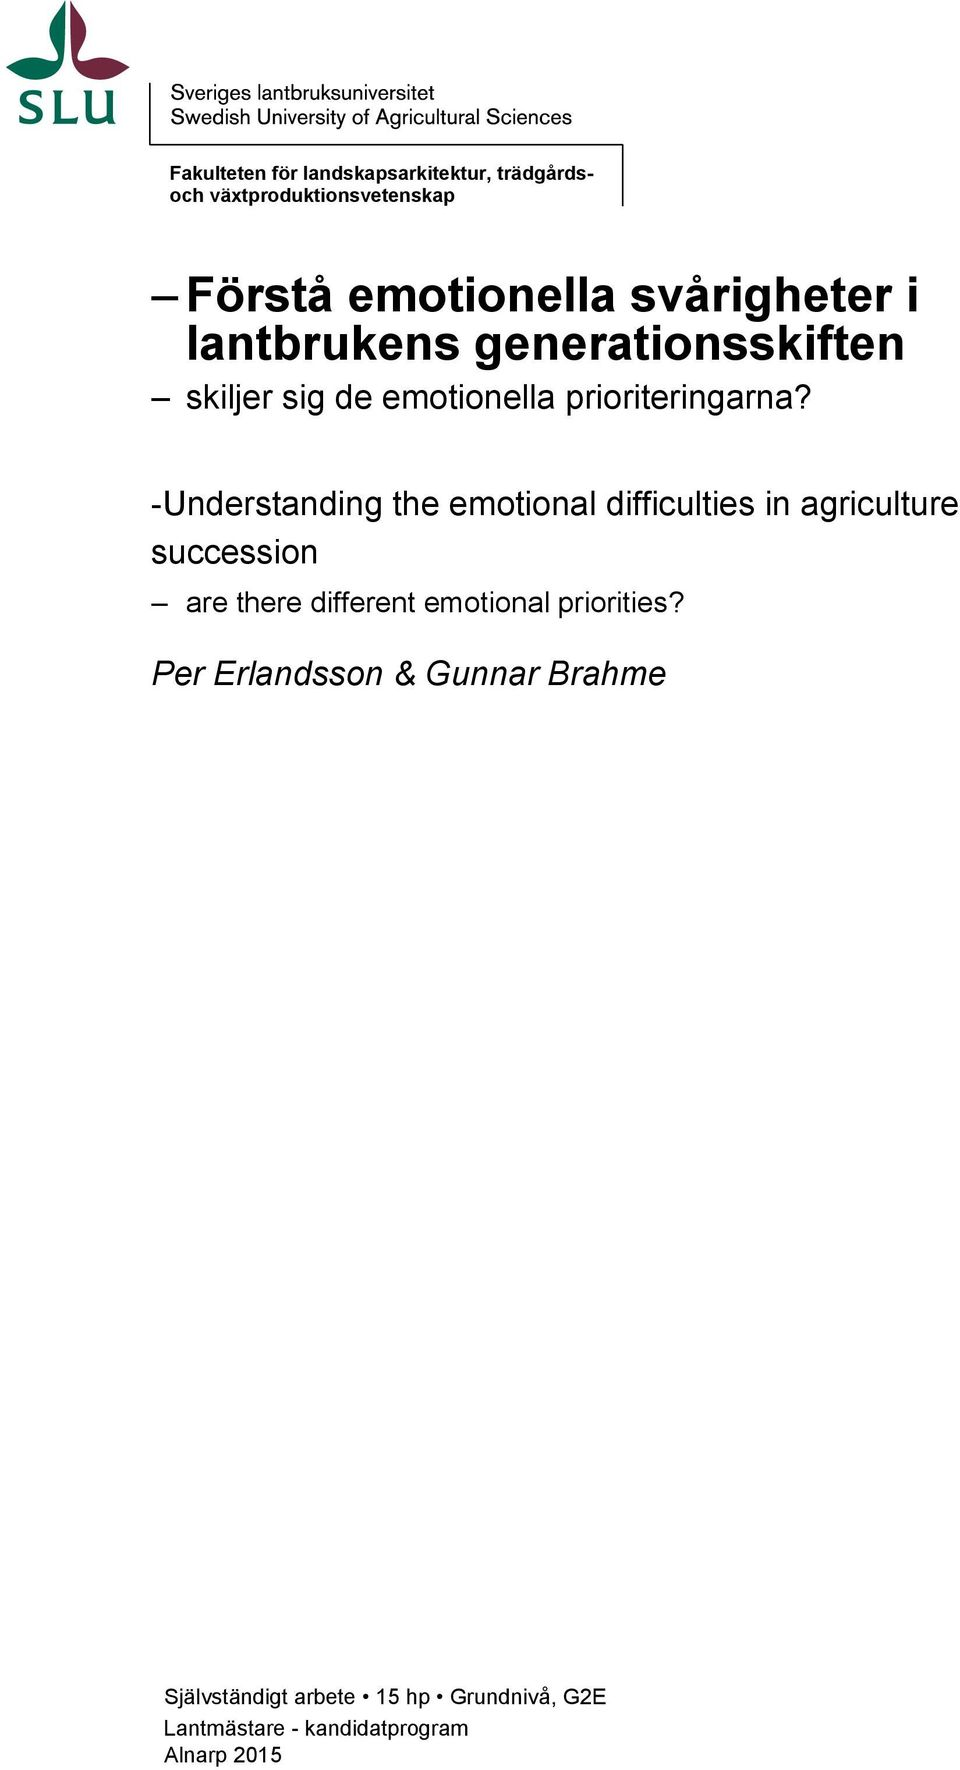 -Understanding the emotional difficulties in agriculture succession are there different emotional